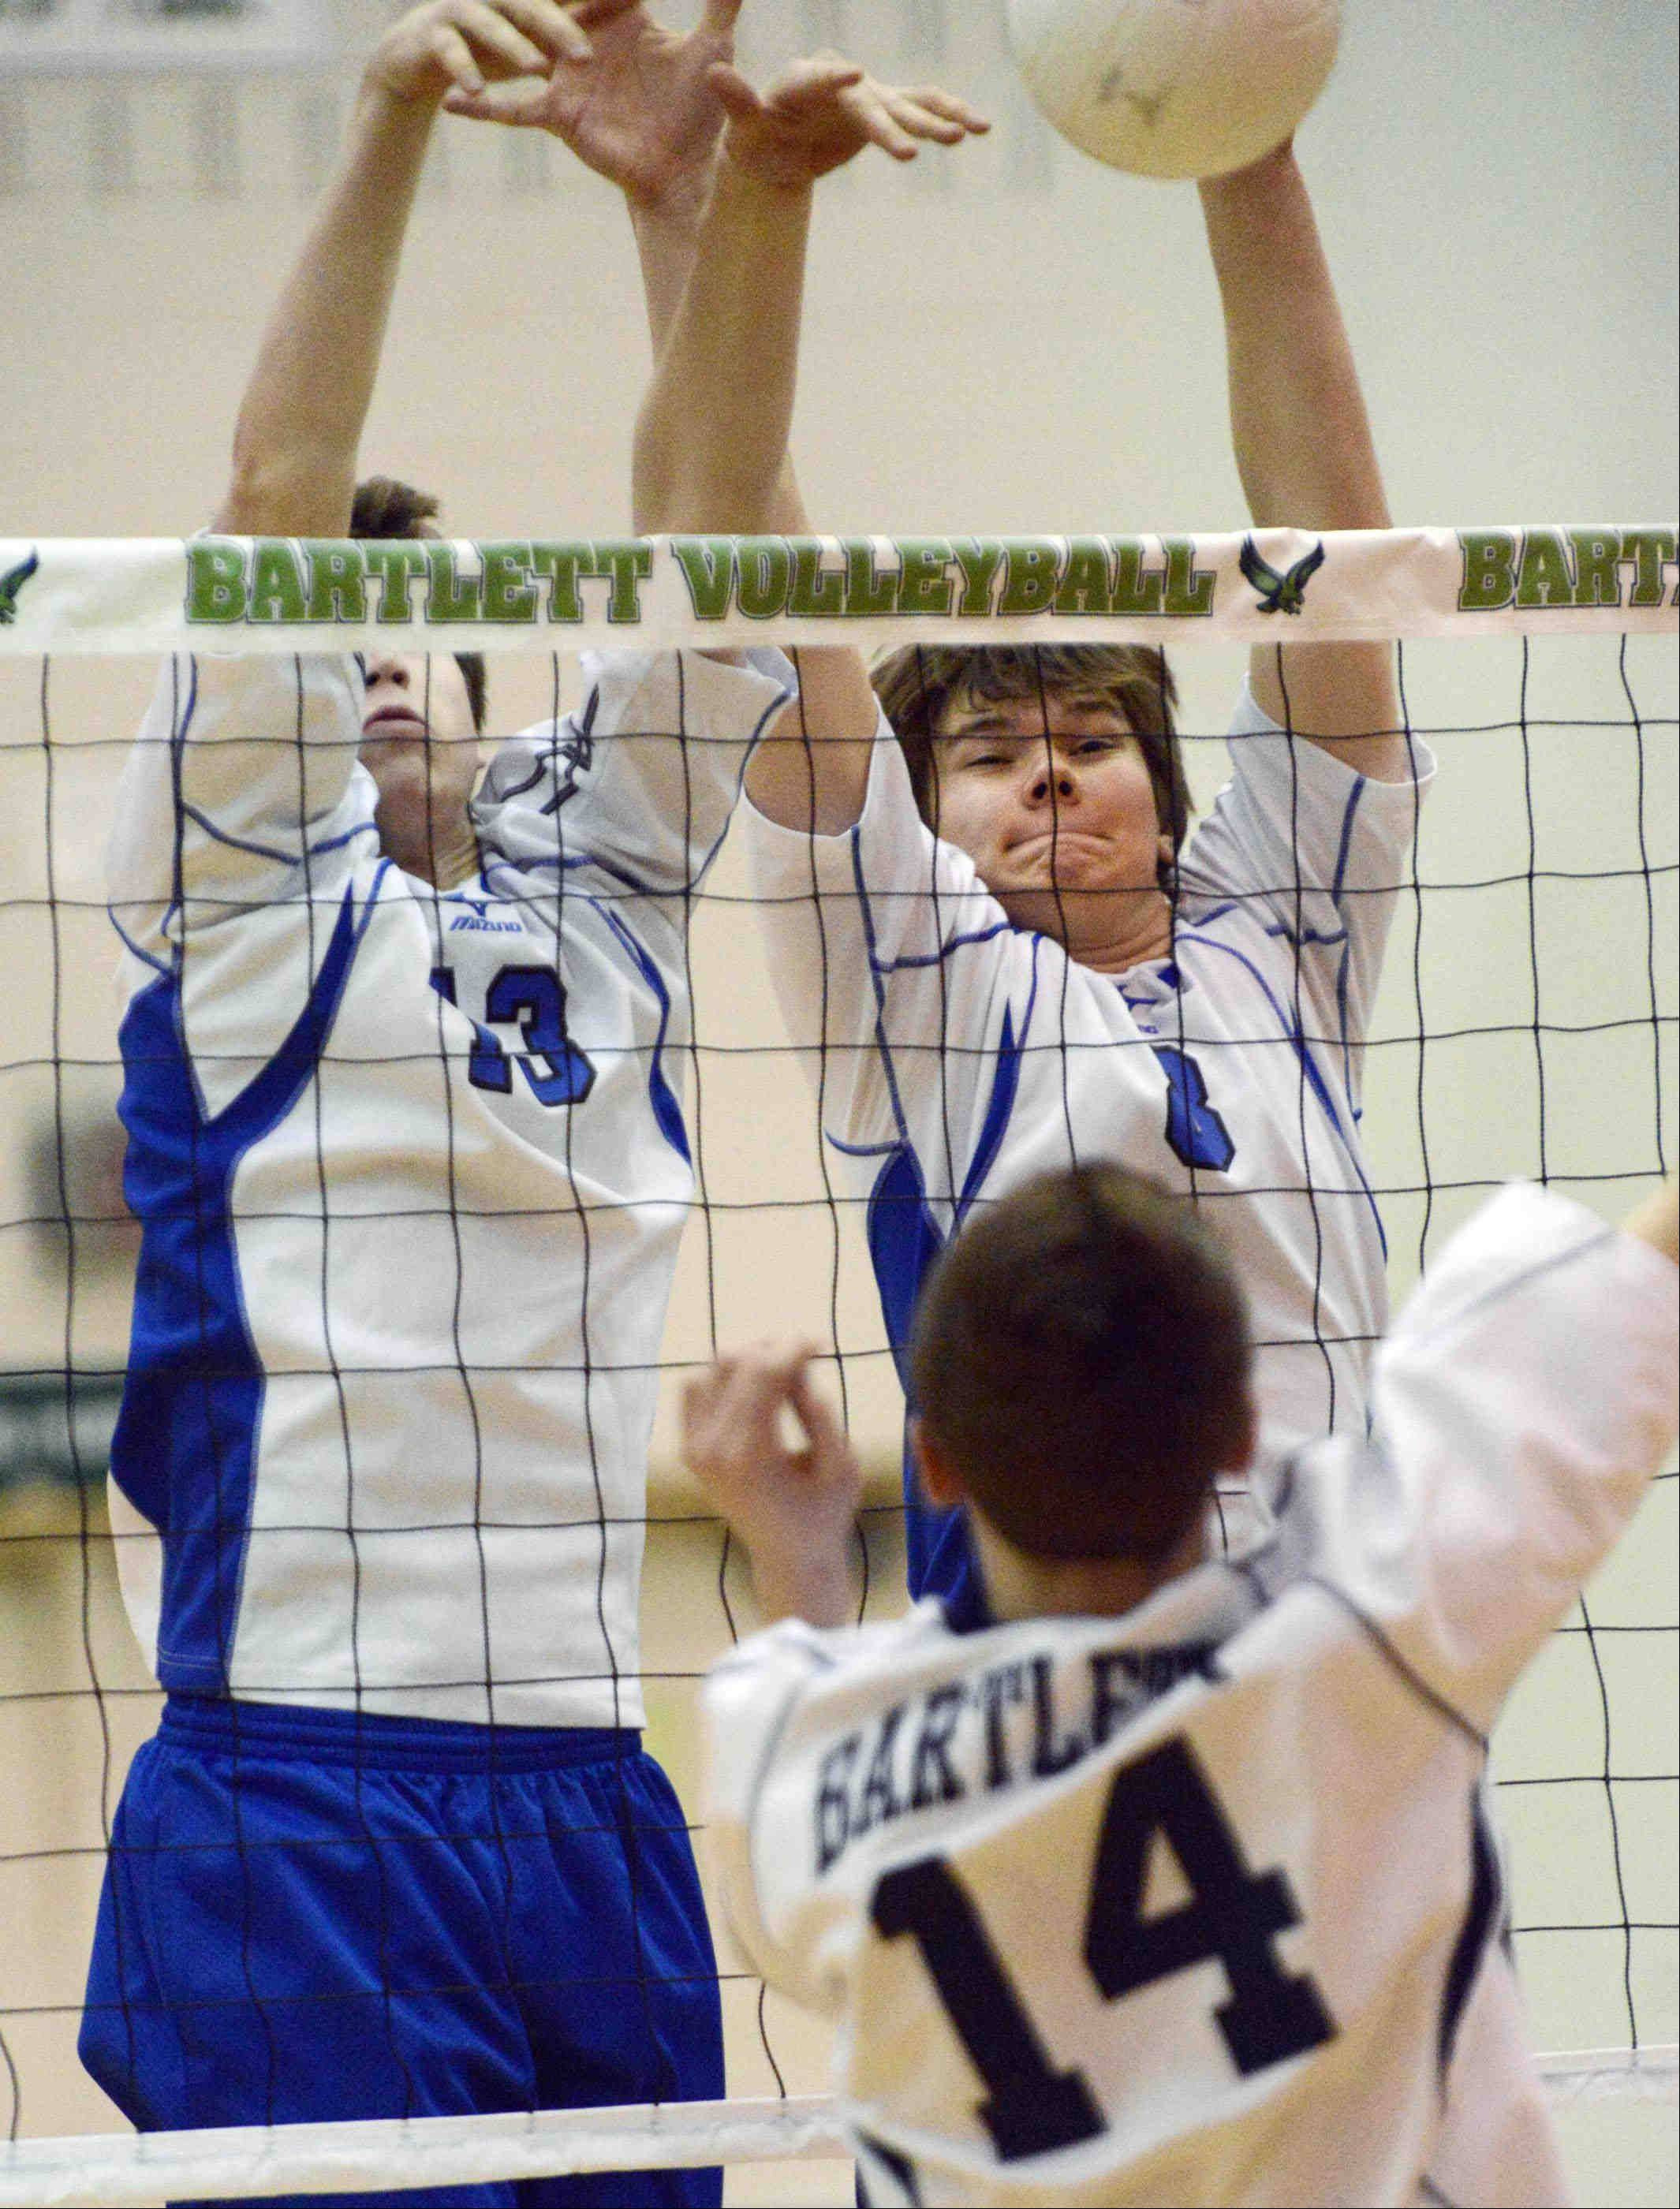 St. Francis' Matt Metzler and Mike Murphy, right, double-team a block of Bartlett's Ben Saldivar on Wednesday in Bartlett.